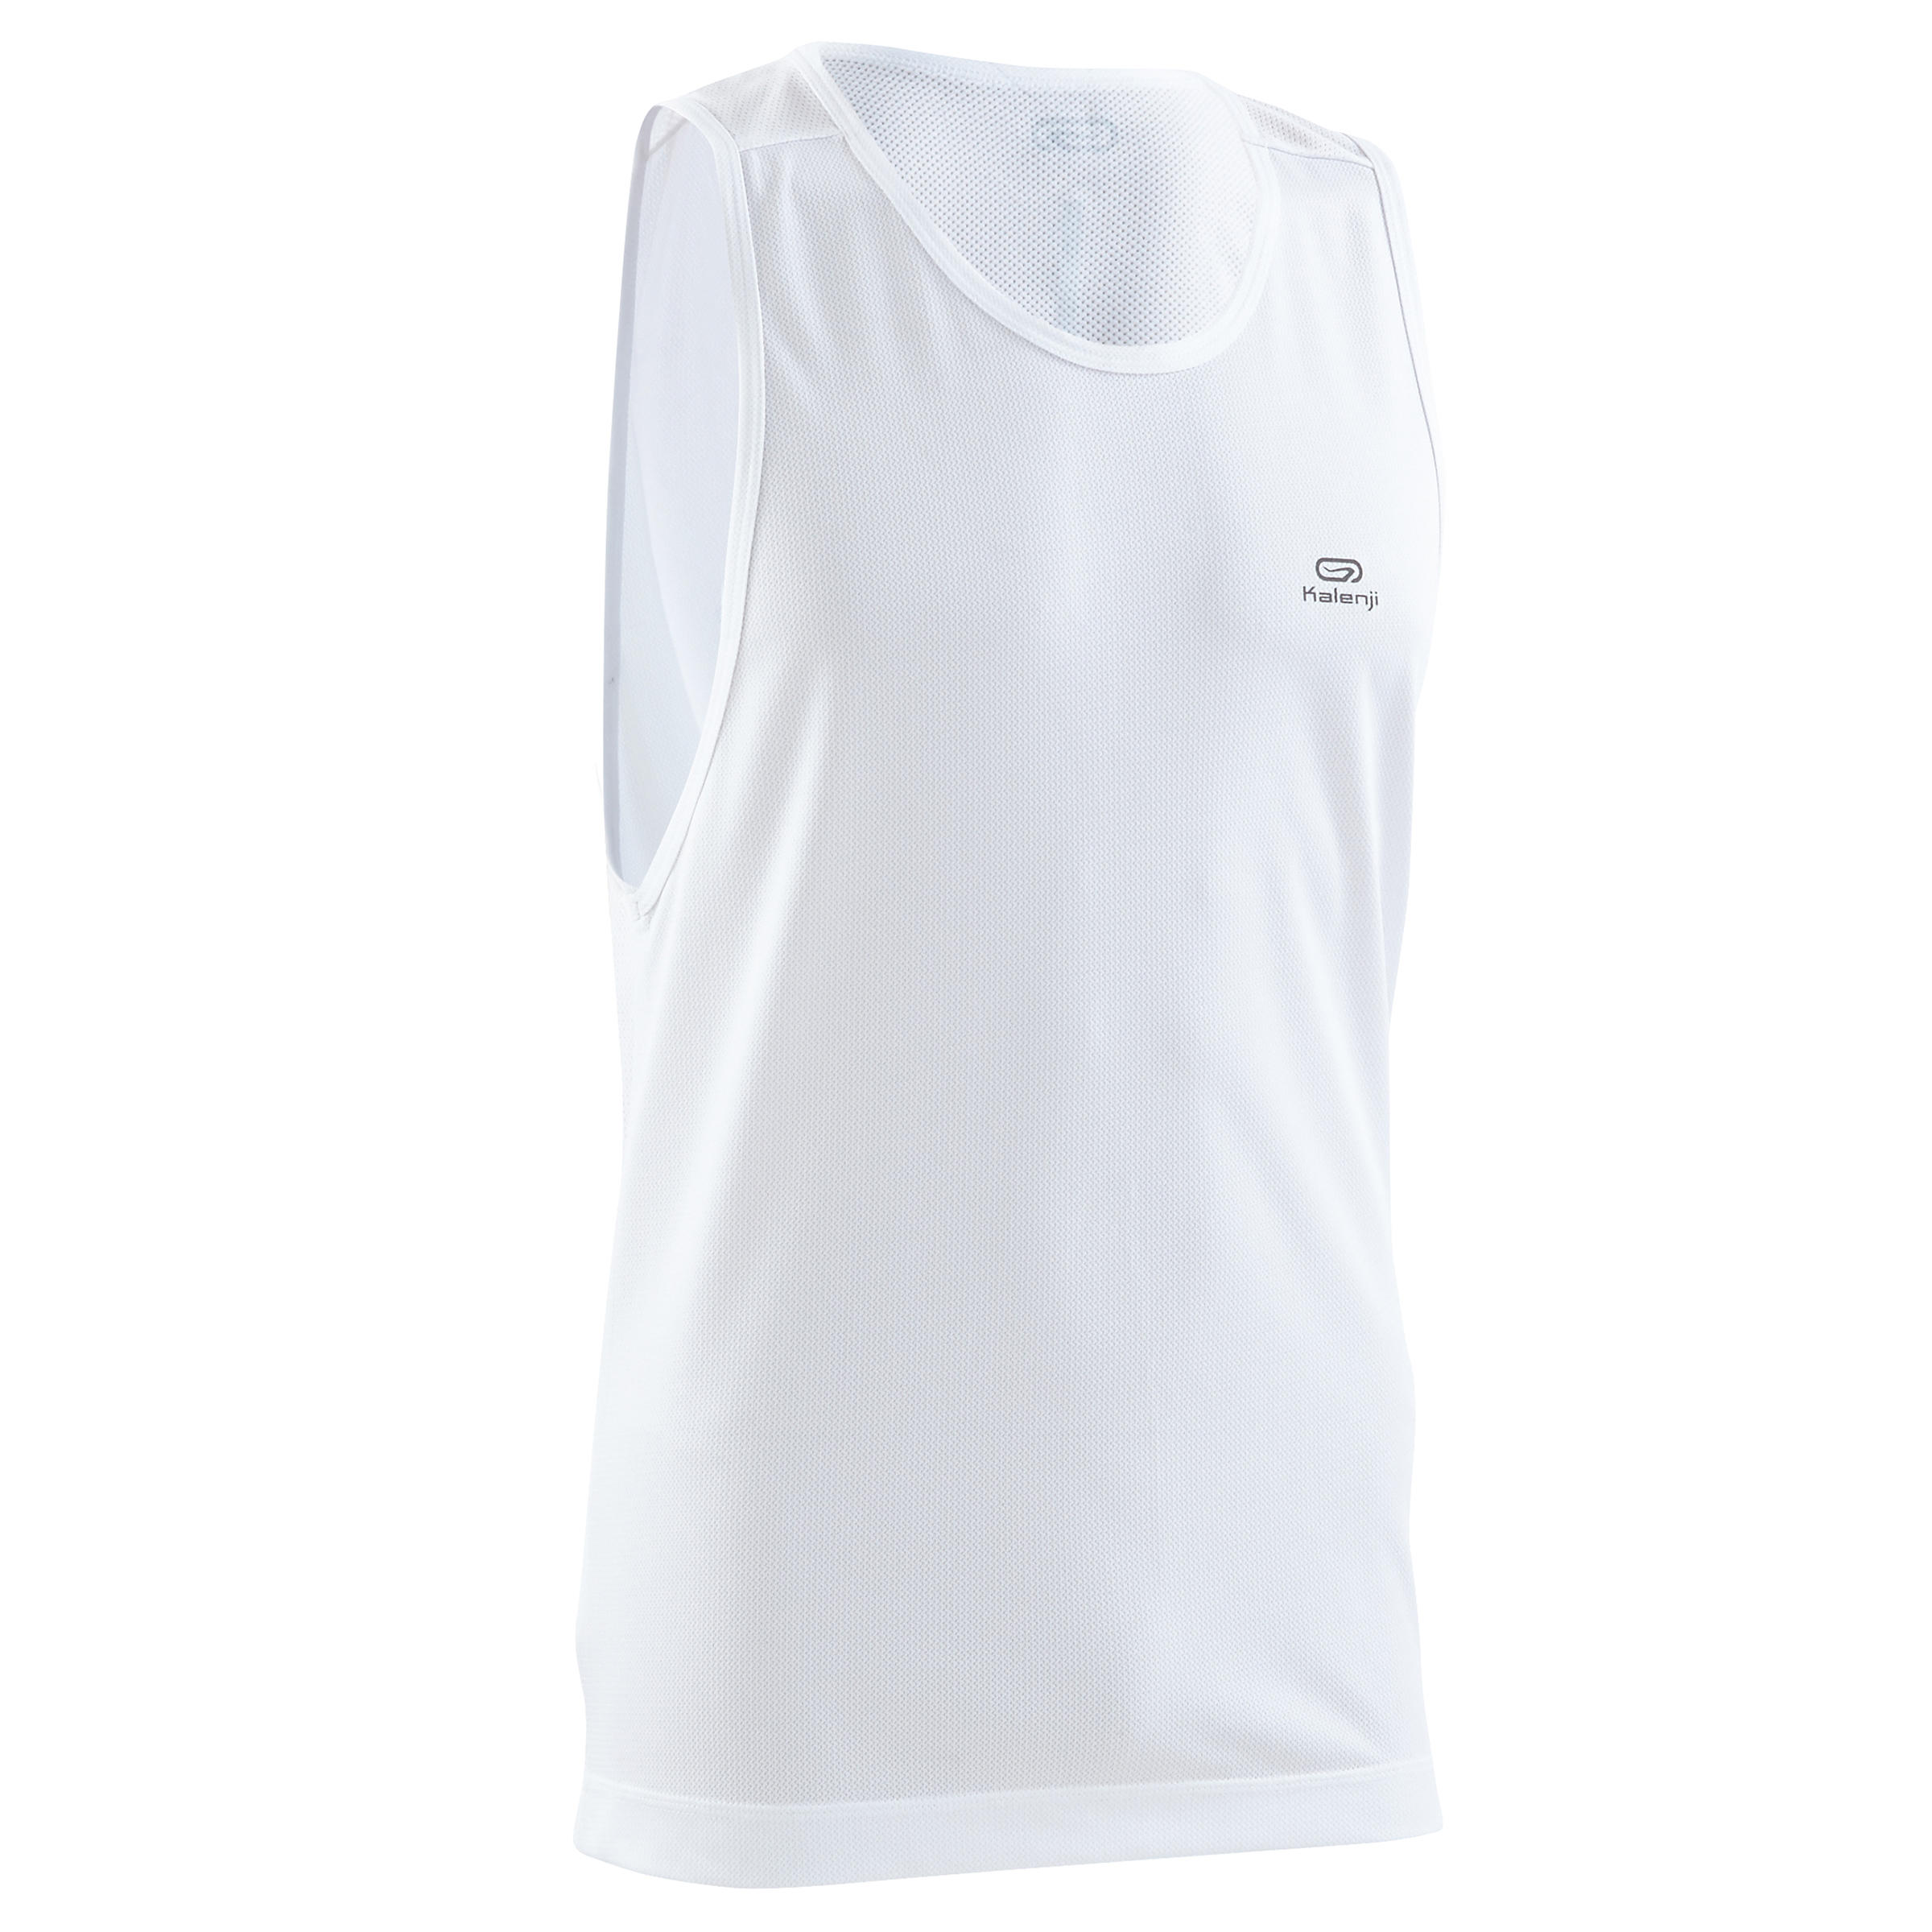 PLAYERA SIN MANGAS RUNNING HOMBRE RUN DRY BLANCO